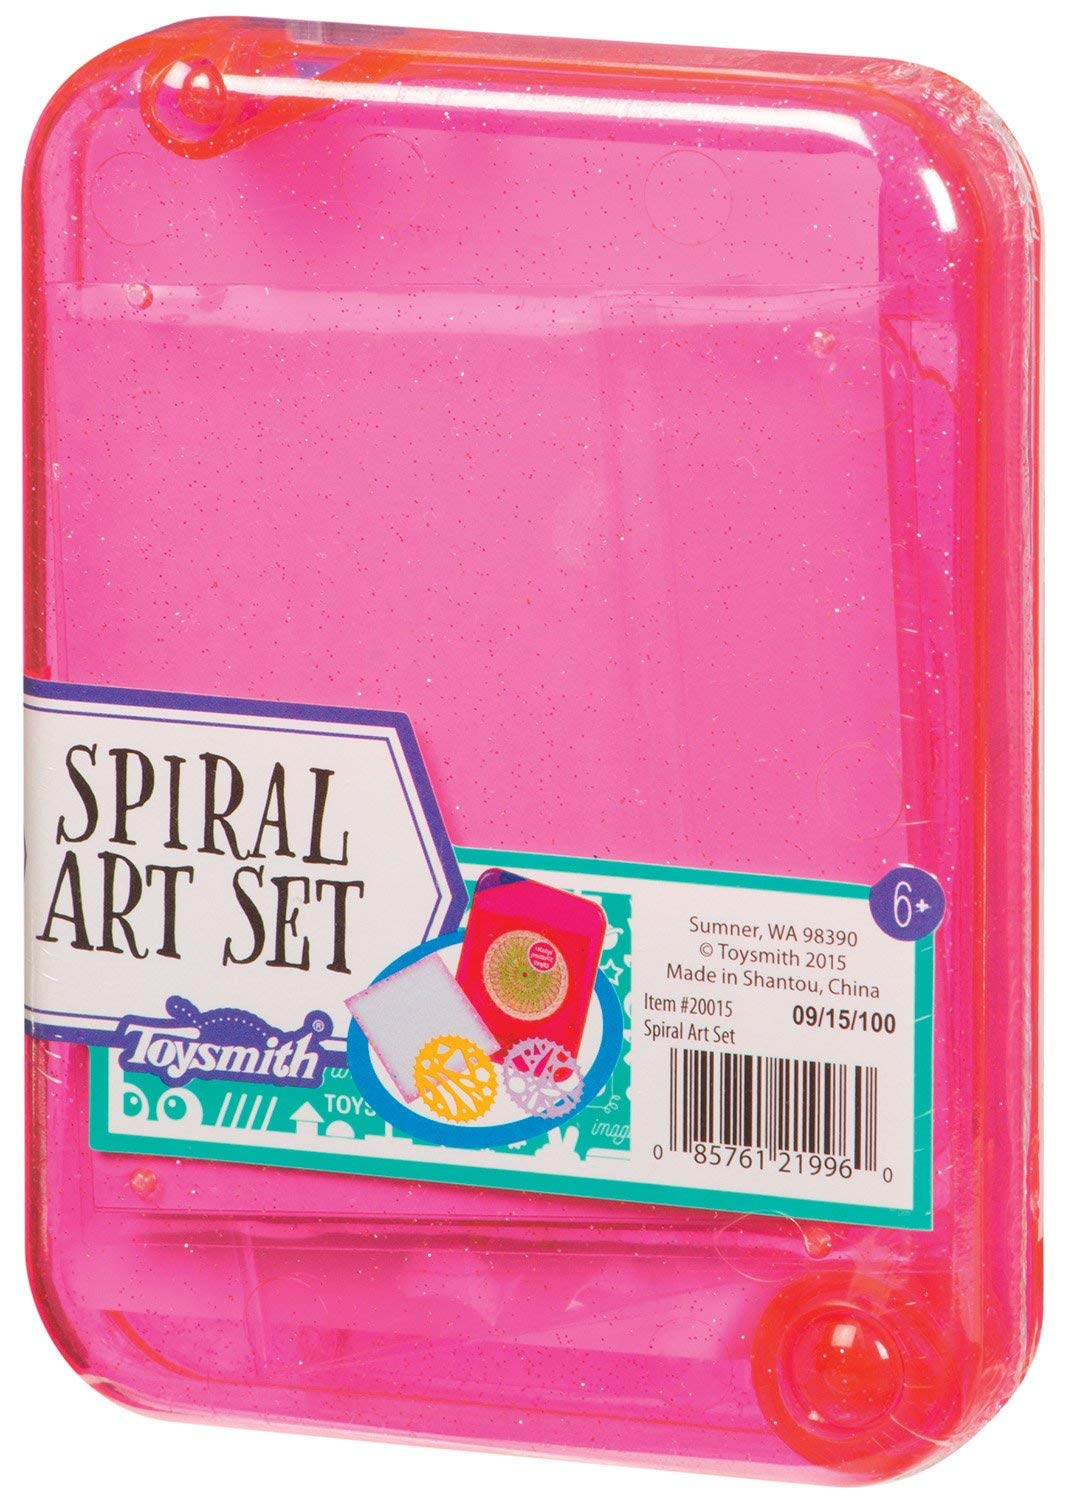 Great for Travel and Backpacks Stencil Art Kit and Spiral Art Set Toysmith Set of Two Travel Art Sets